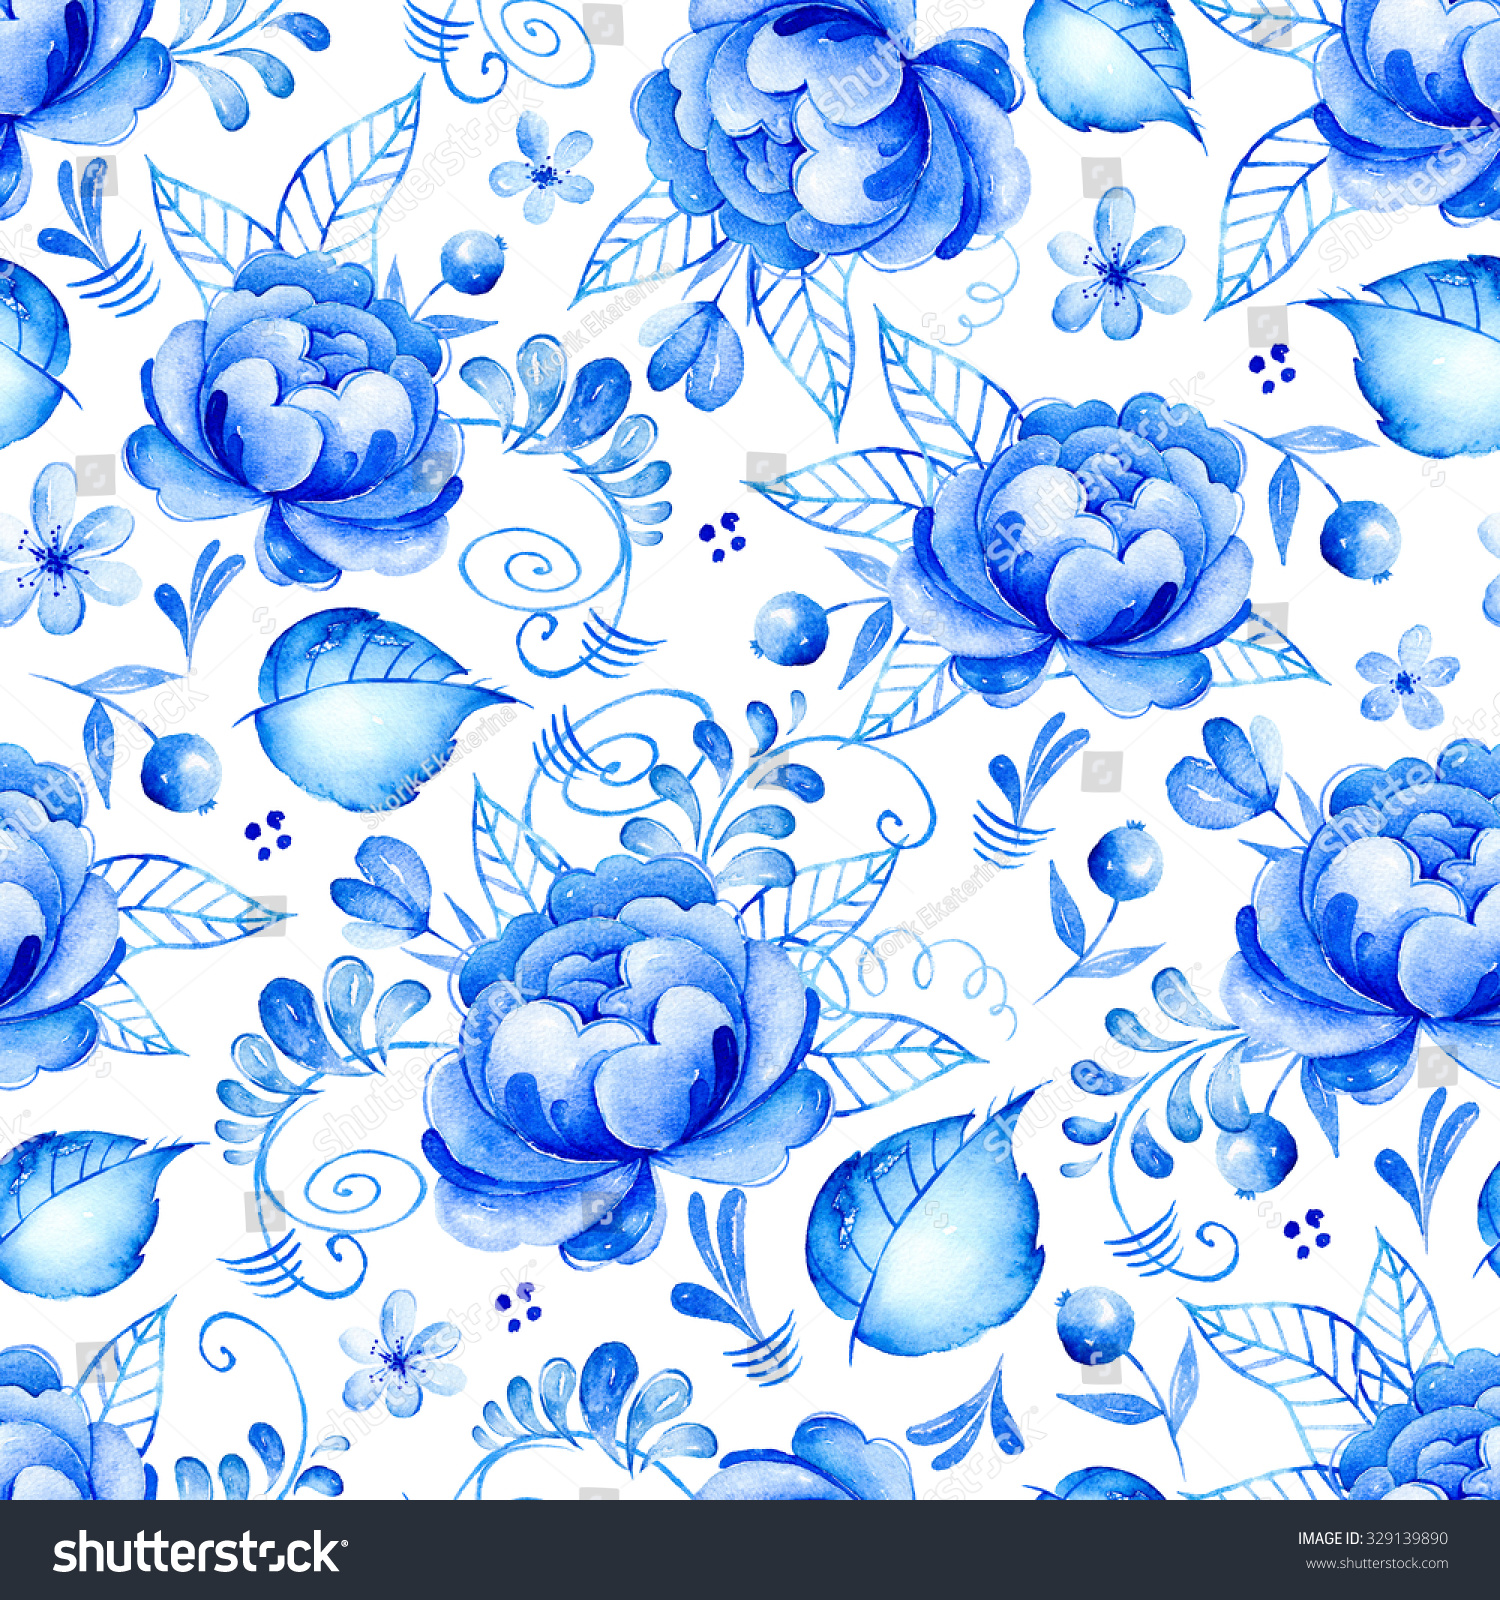 Artistic floral element abstract gzhel folk art blue flowers stock - Abstract Watercolor Floral Seamless Pattern With Folk Art Flowers Blue White Ornament Background With